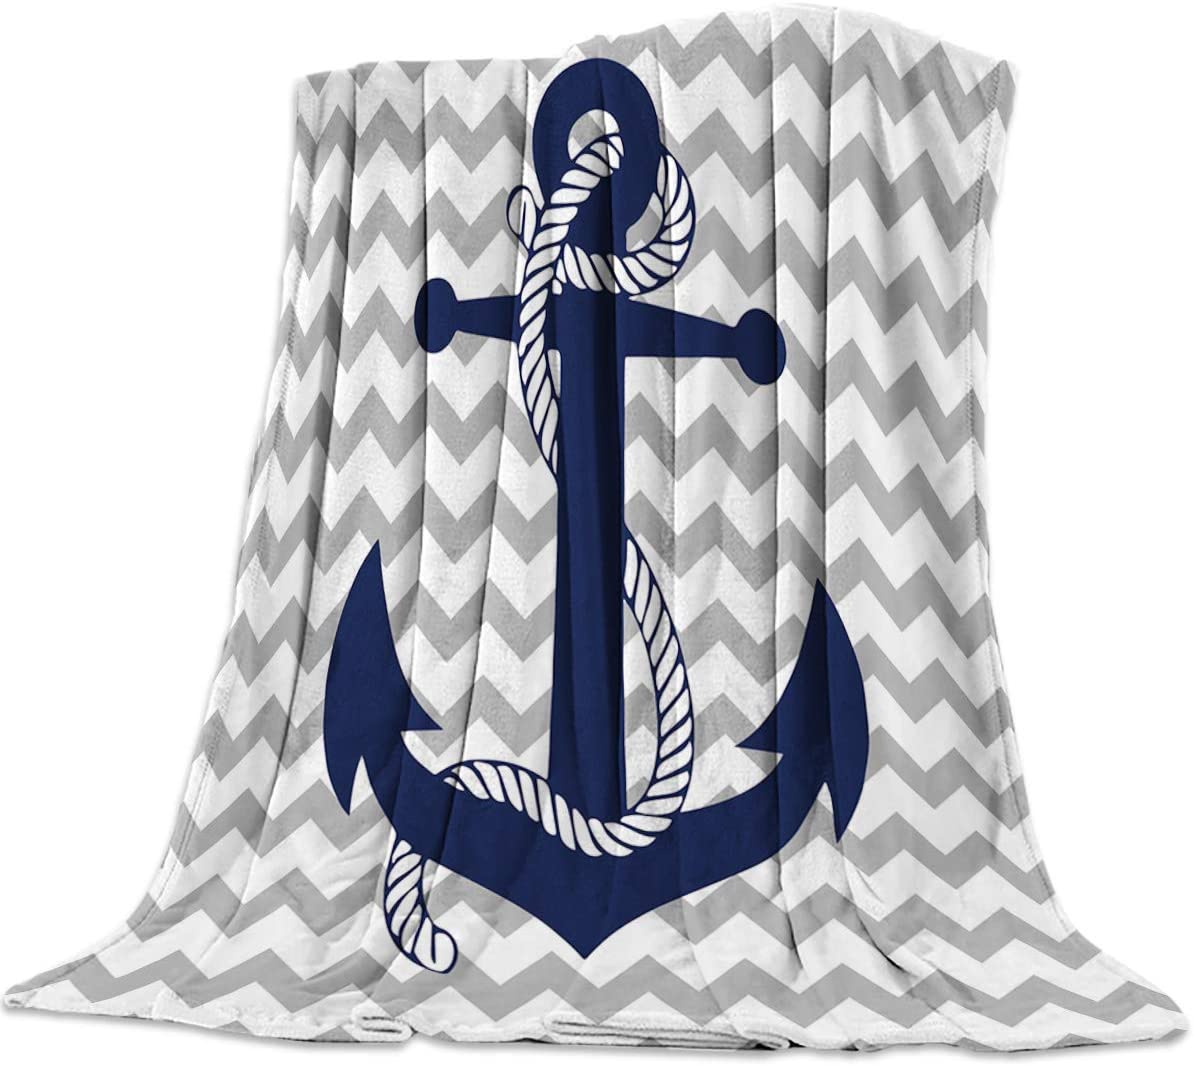 Flannel Fleece Luxury Lightweight Cozy Couch/Bed Super Soft Warm Plush Microfiber Throw Blanket,Nautical Navy Anchor with Gray and White Chevron (40 x 50 Inches)